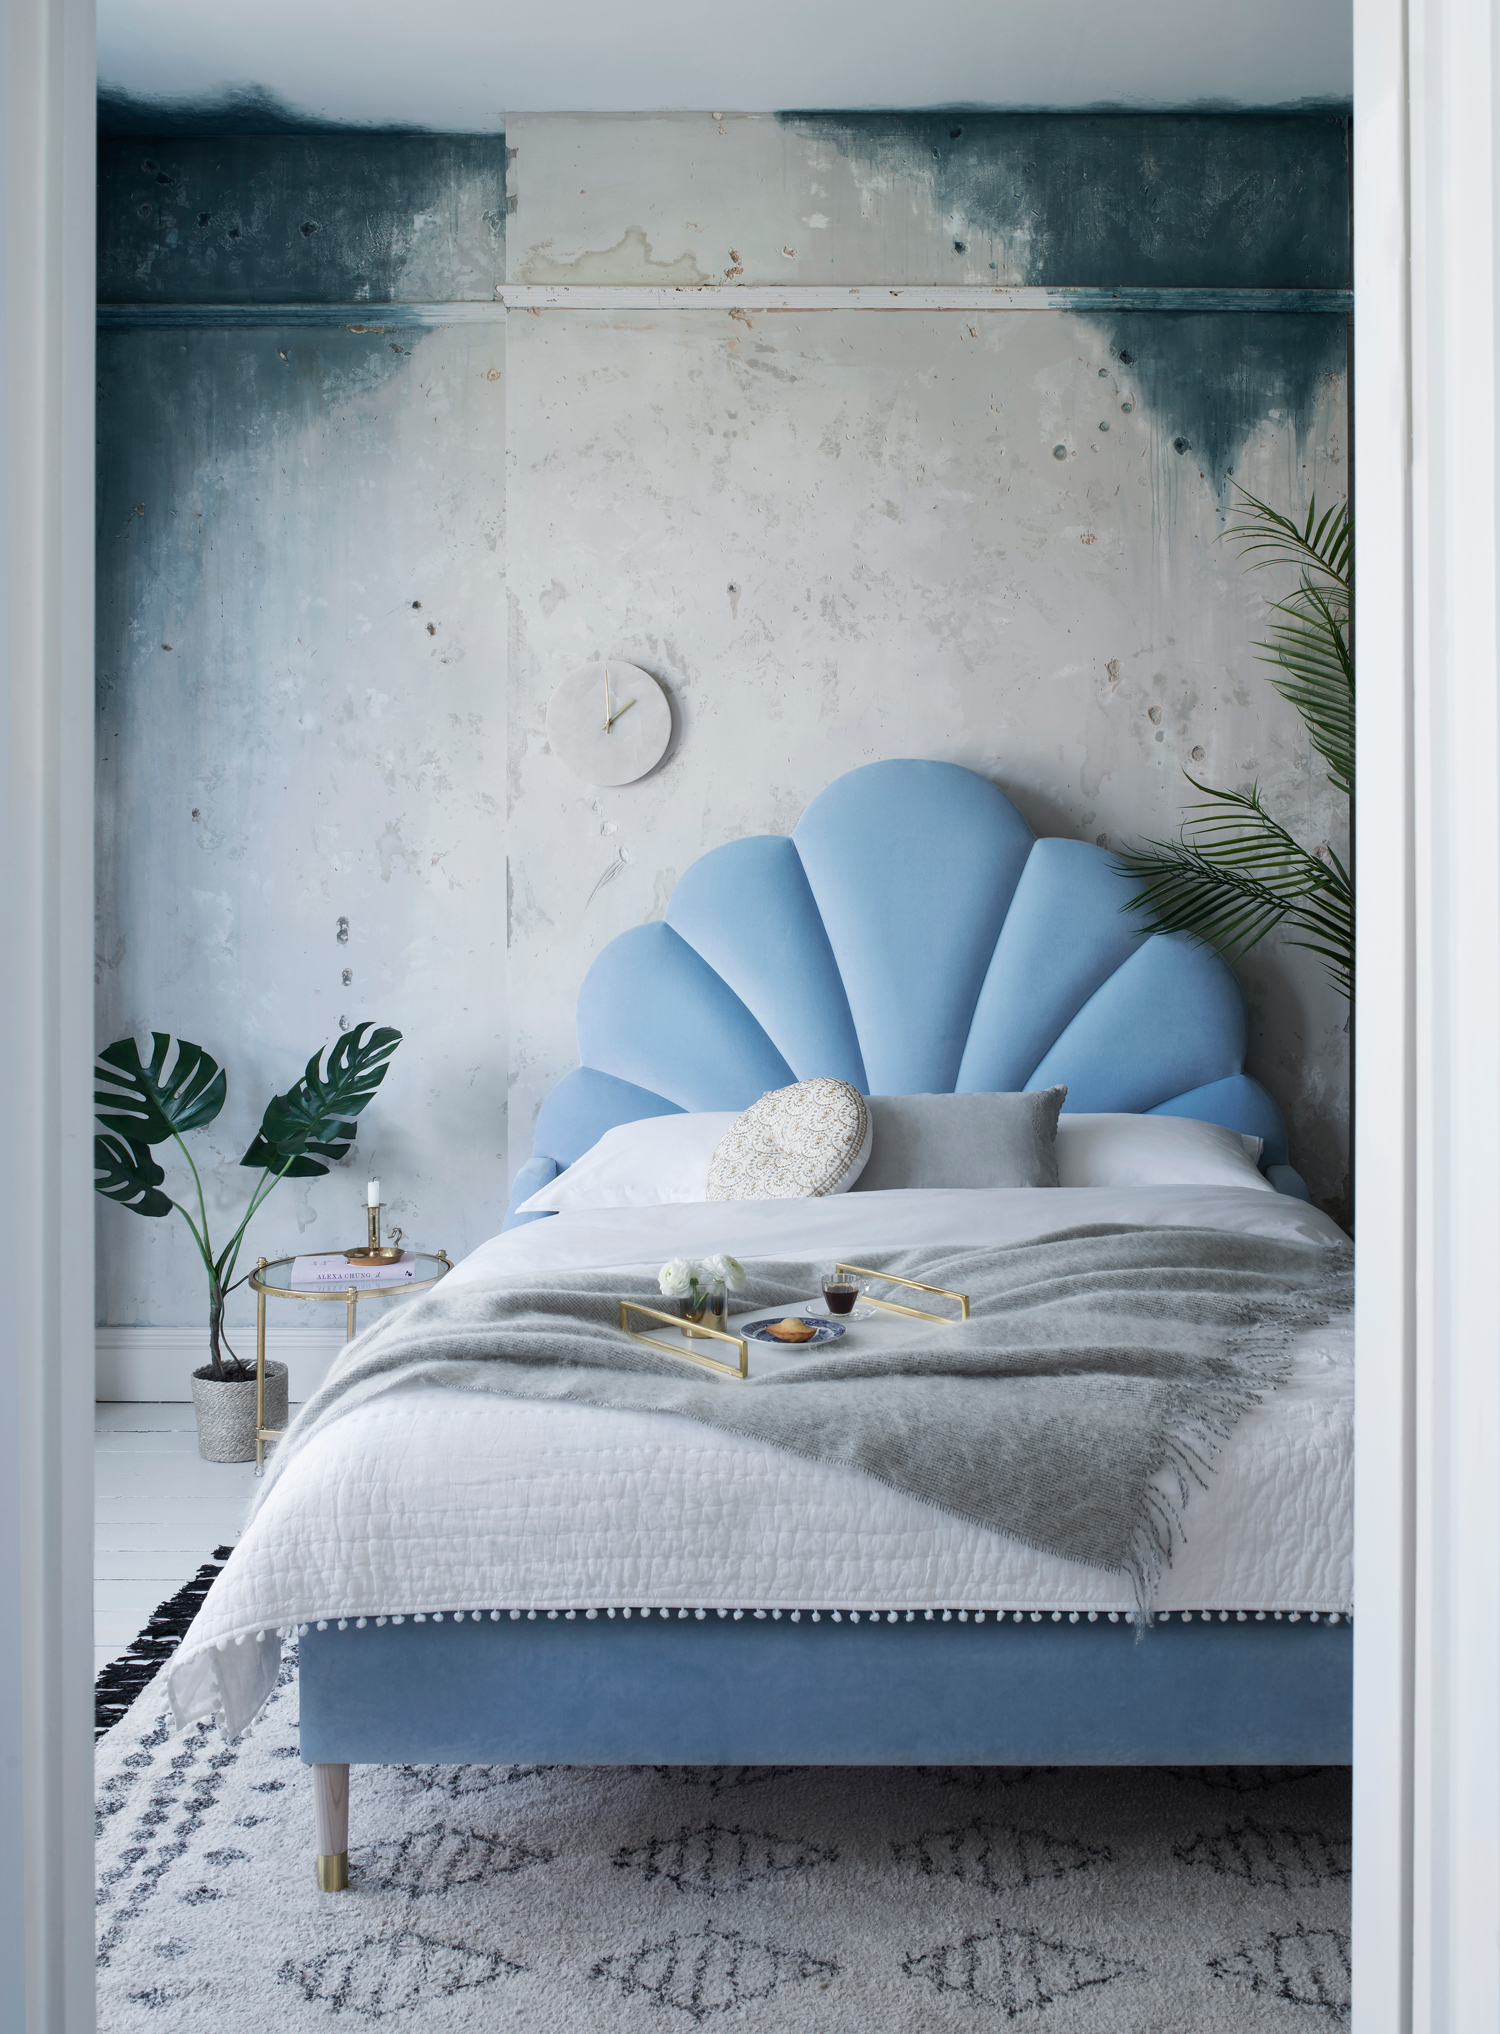 Interior design trends for autumn winter 2019 - Scalloped furniture by Sweetpea and Willow